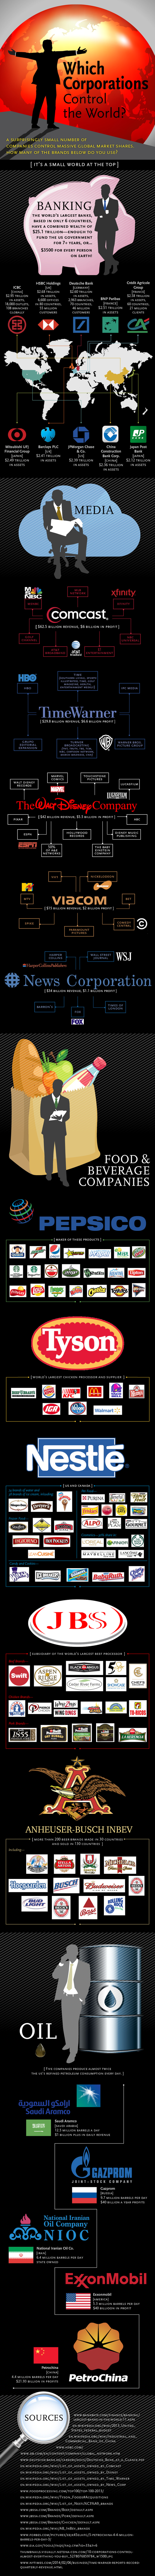 Which Corporations Control the World?